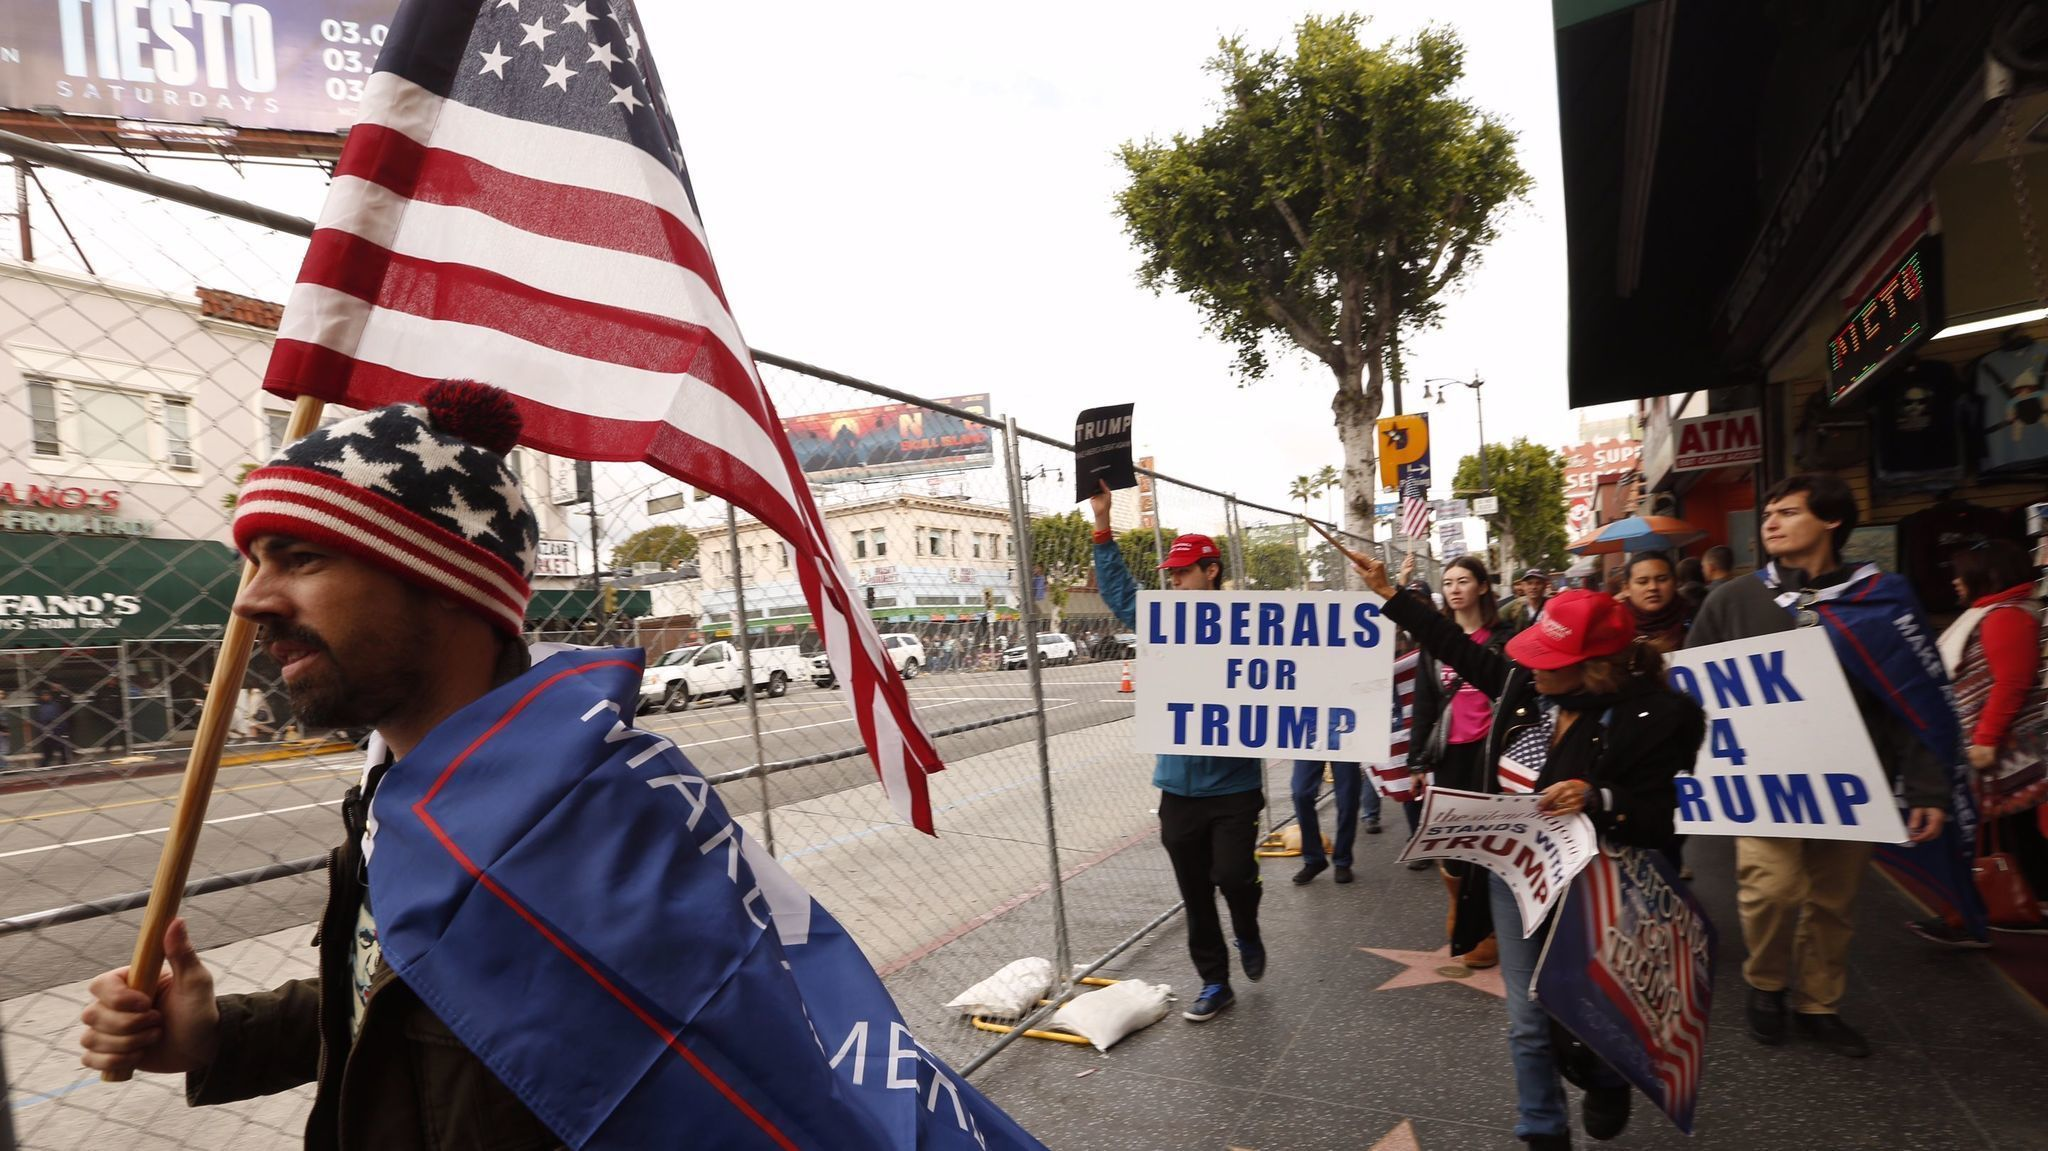 Trump supporters rally against 'Hollywood elites' ahead of the Oscars